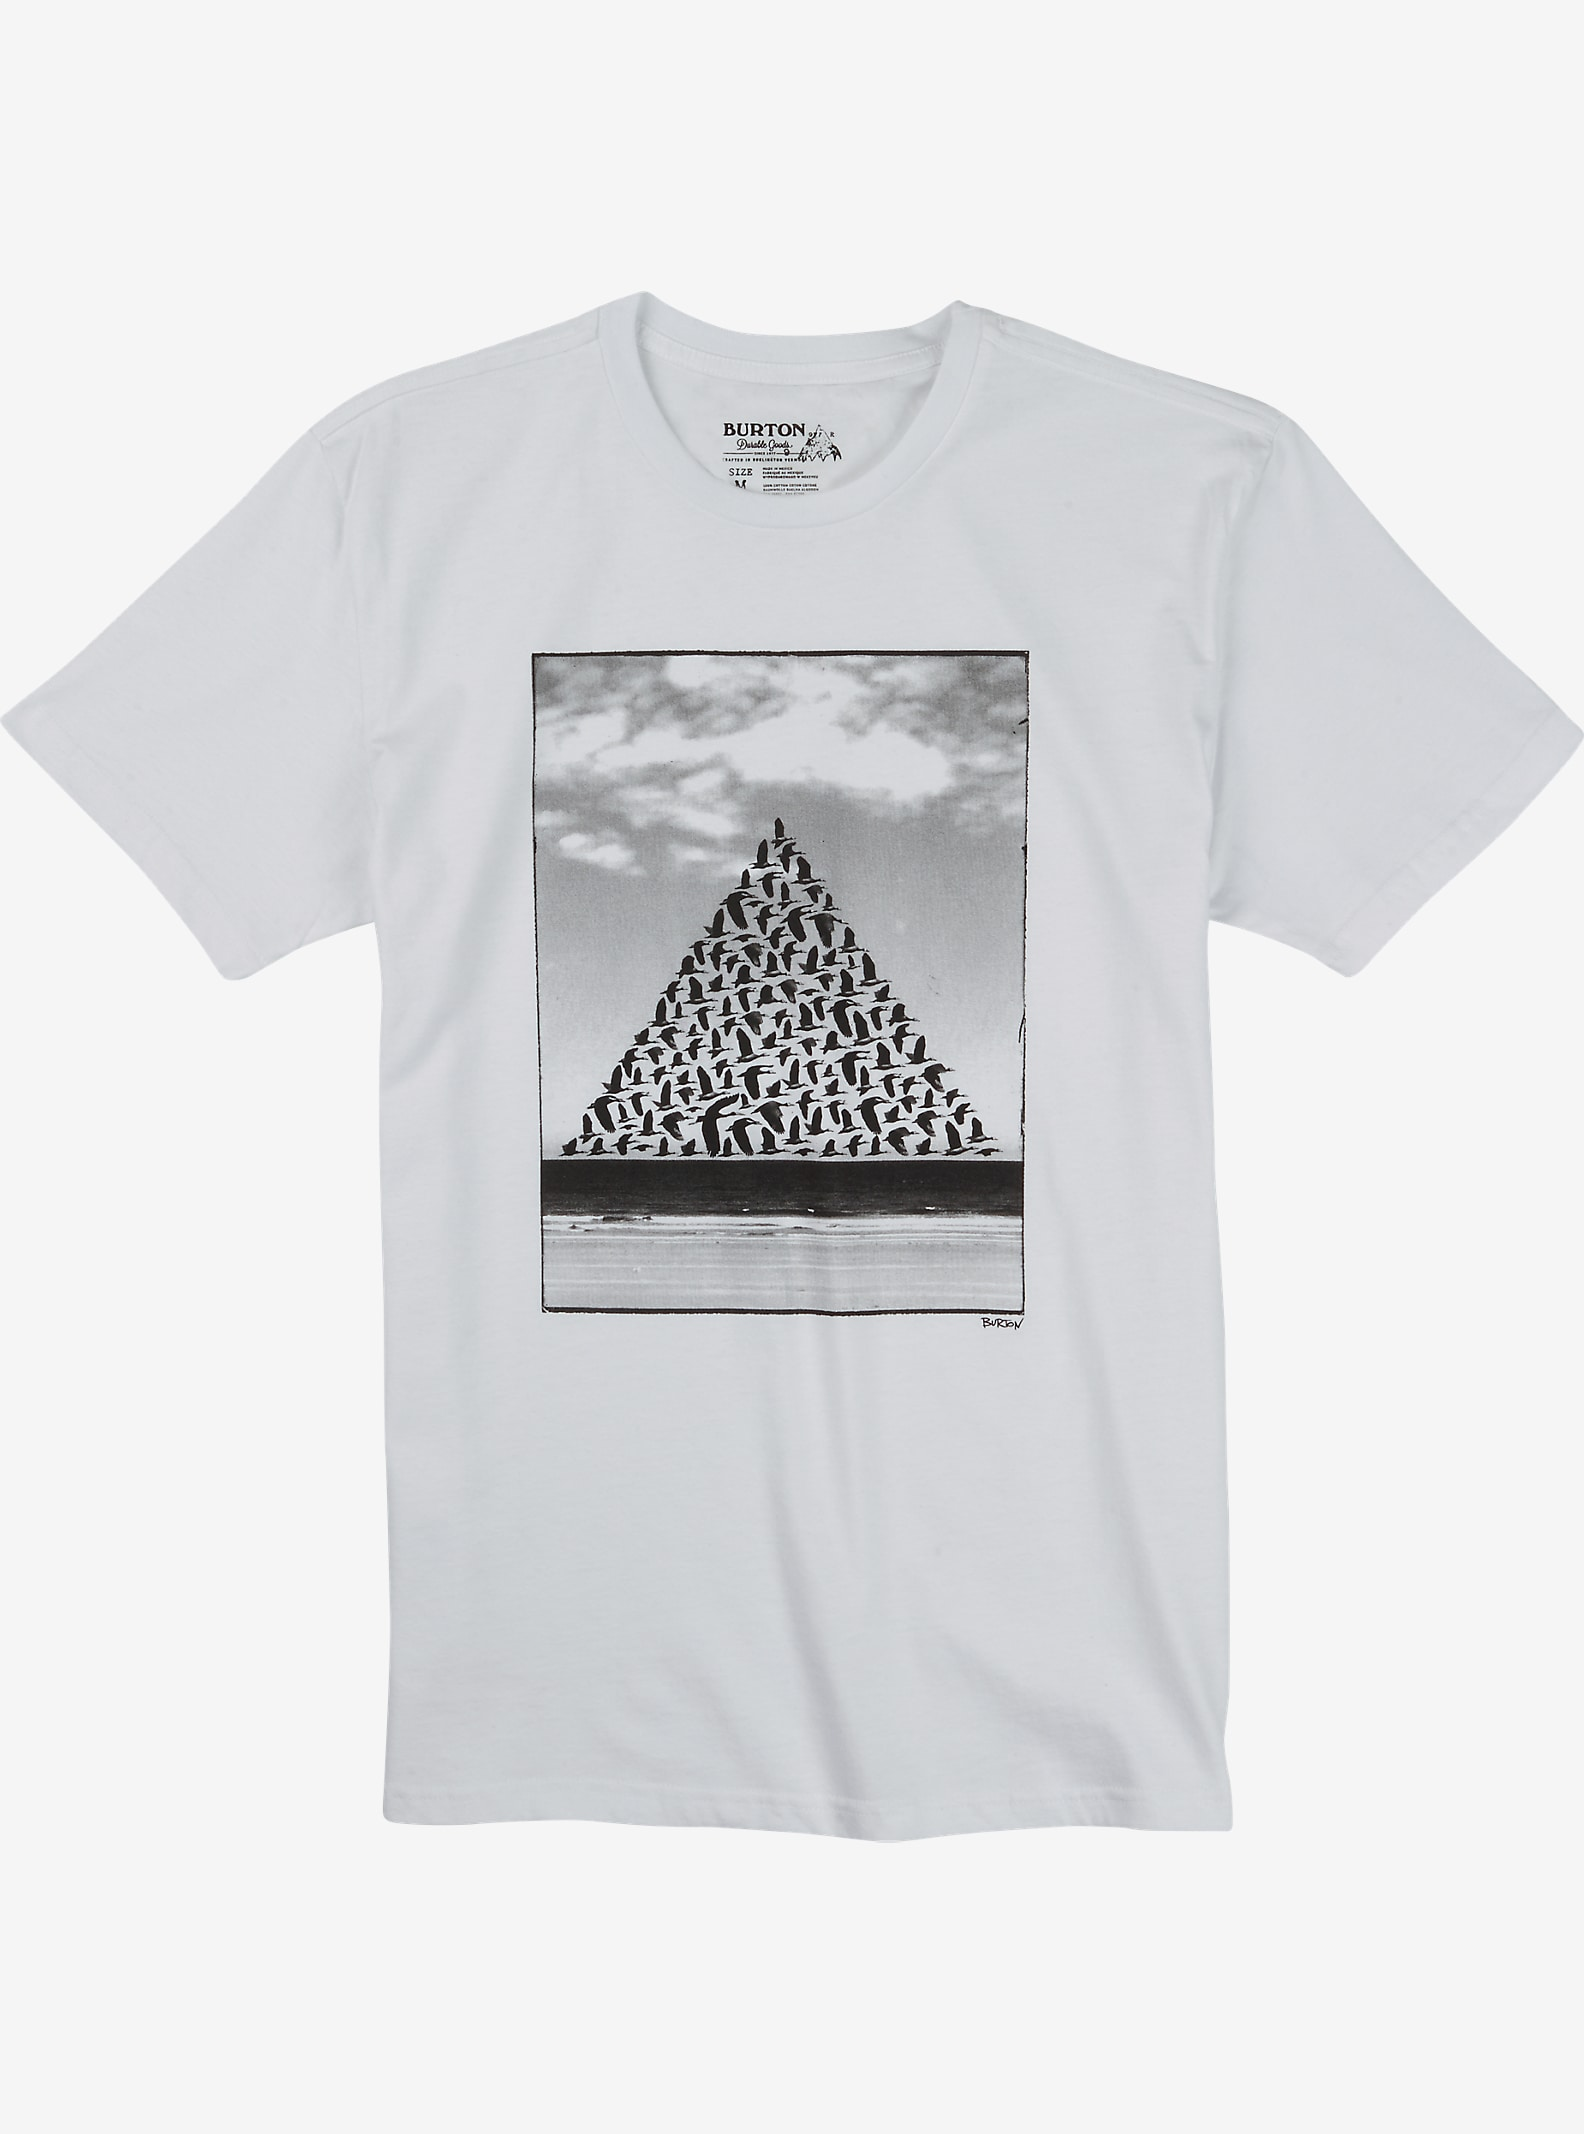 Burton Smith Slim Fit Short Sleeve T Shirt shown in Stout White